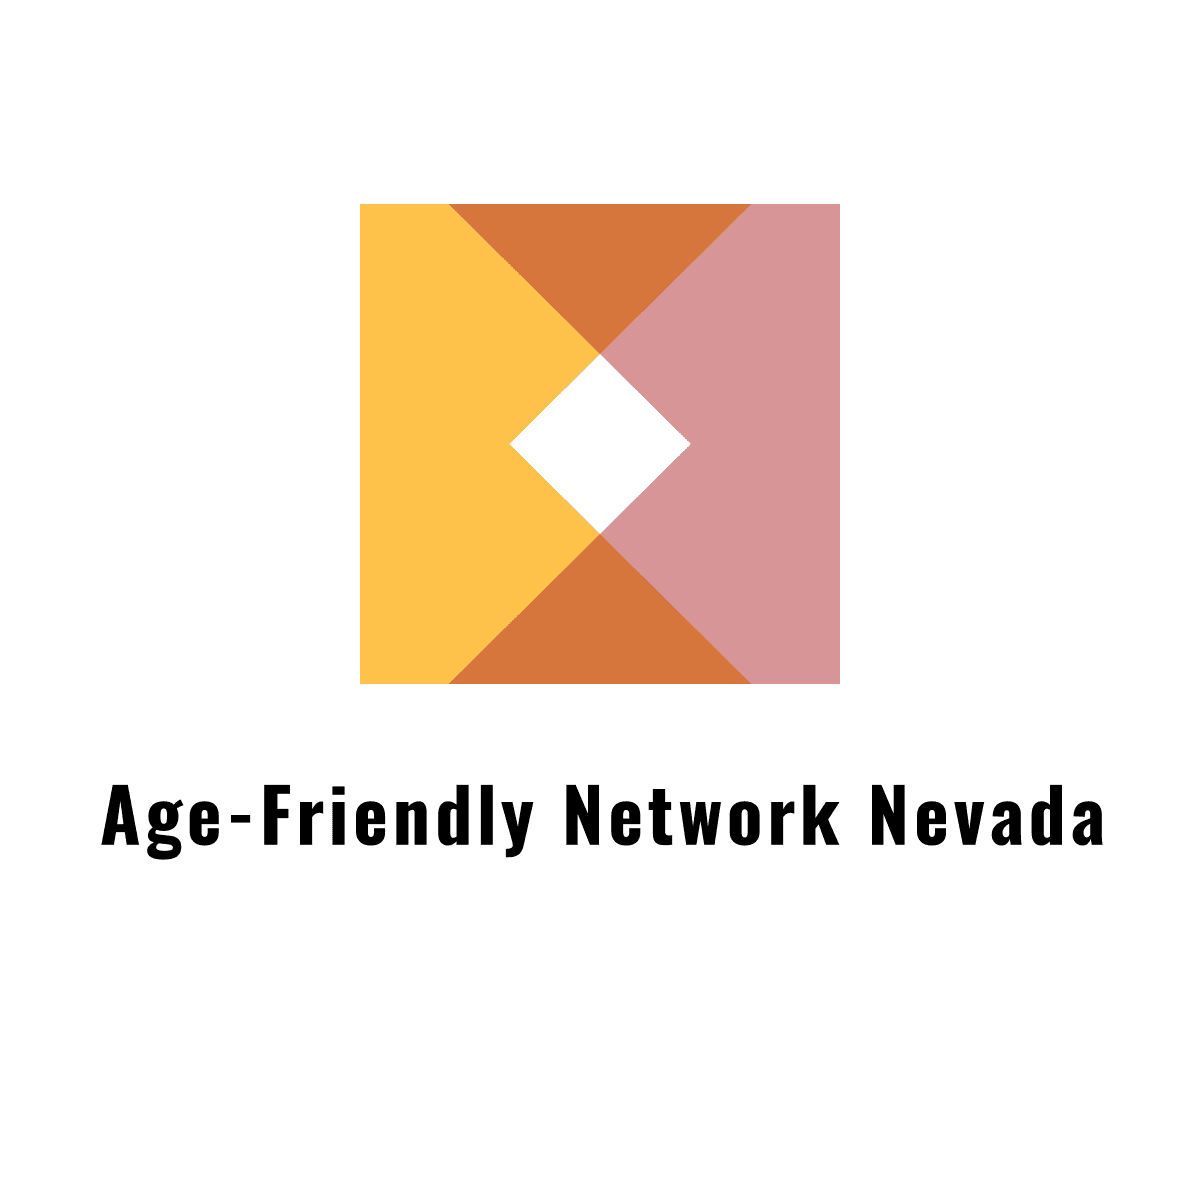 Age-Friendly Network Nevada